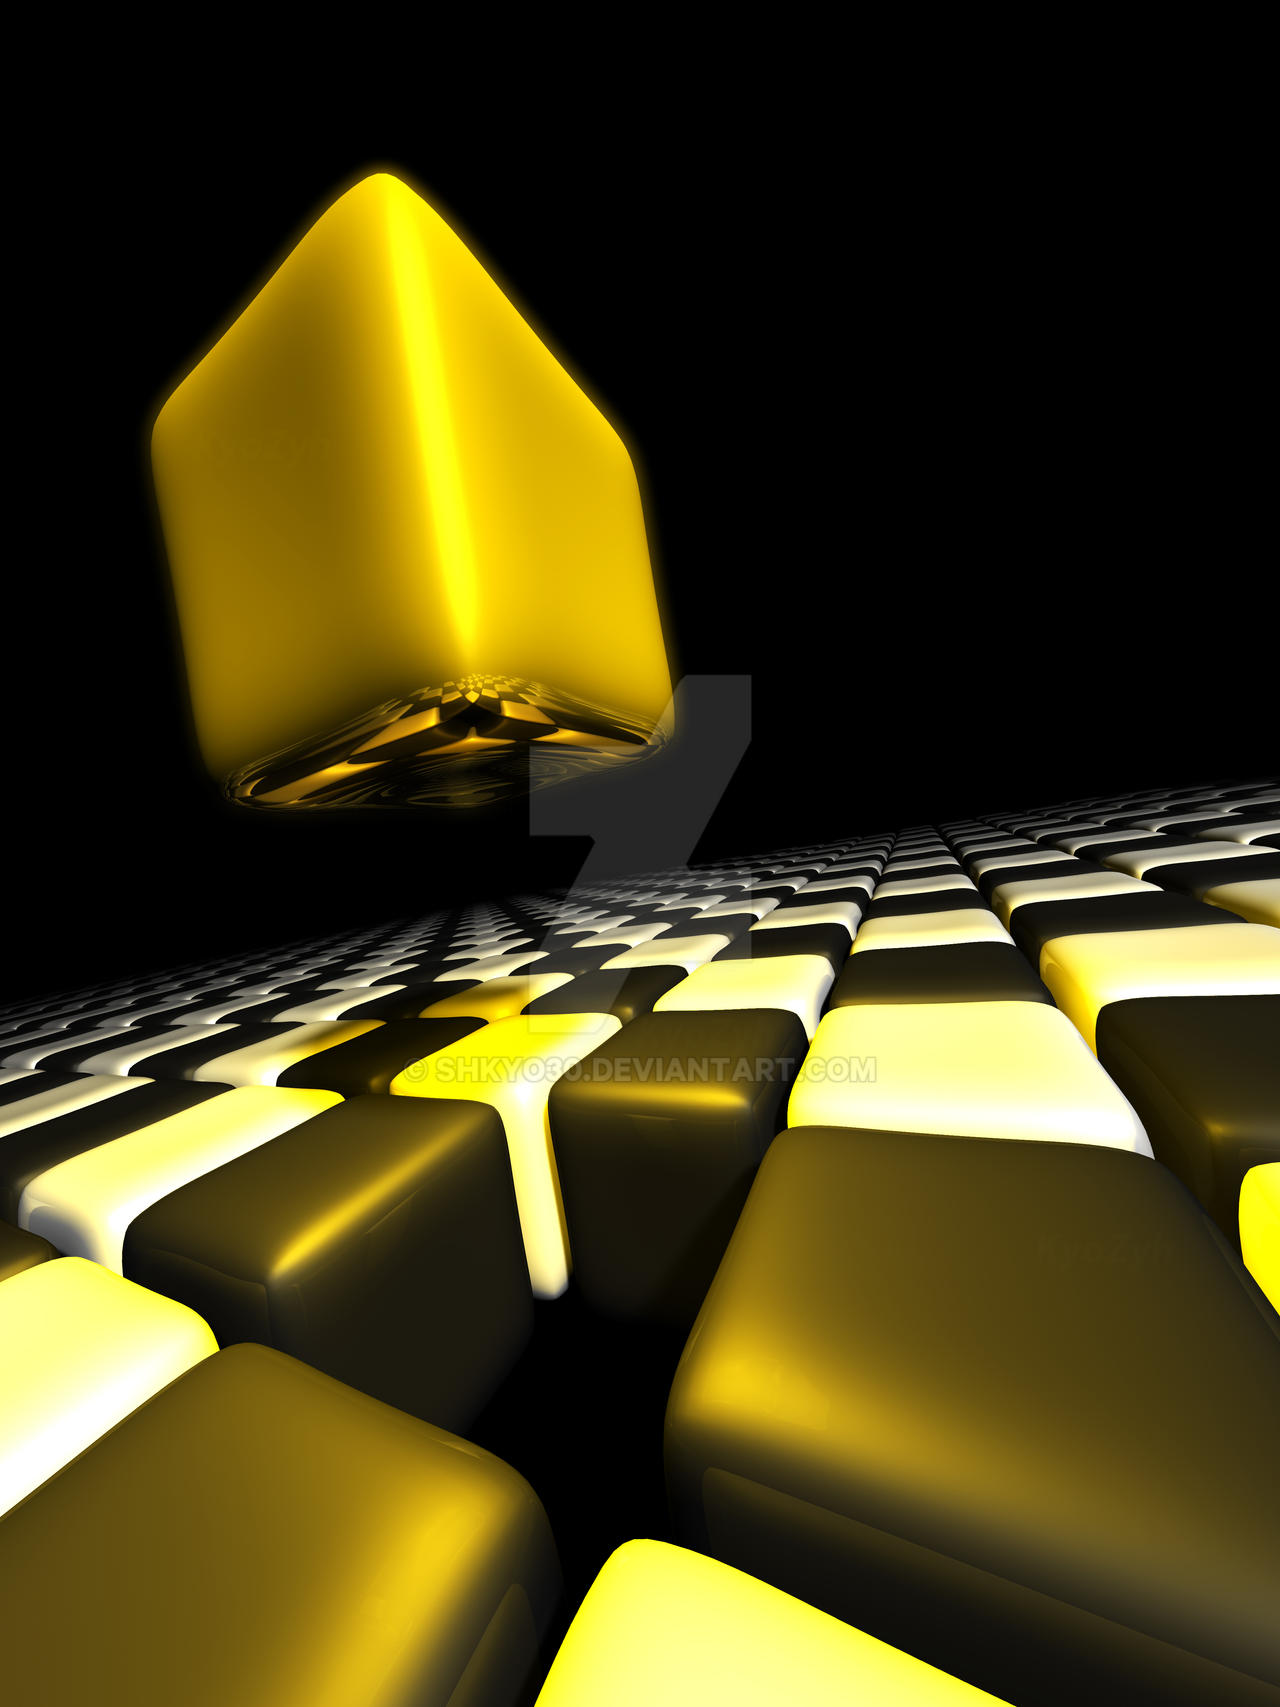 Gold cube alone above many anonymous cubes by shkyo30